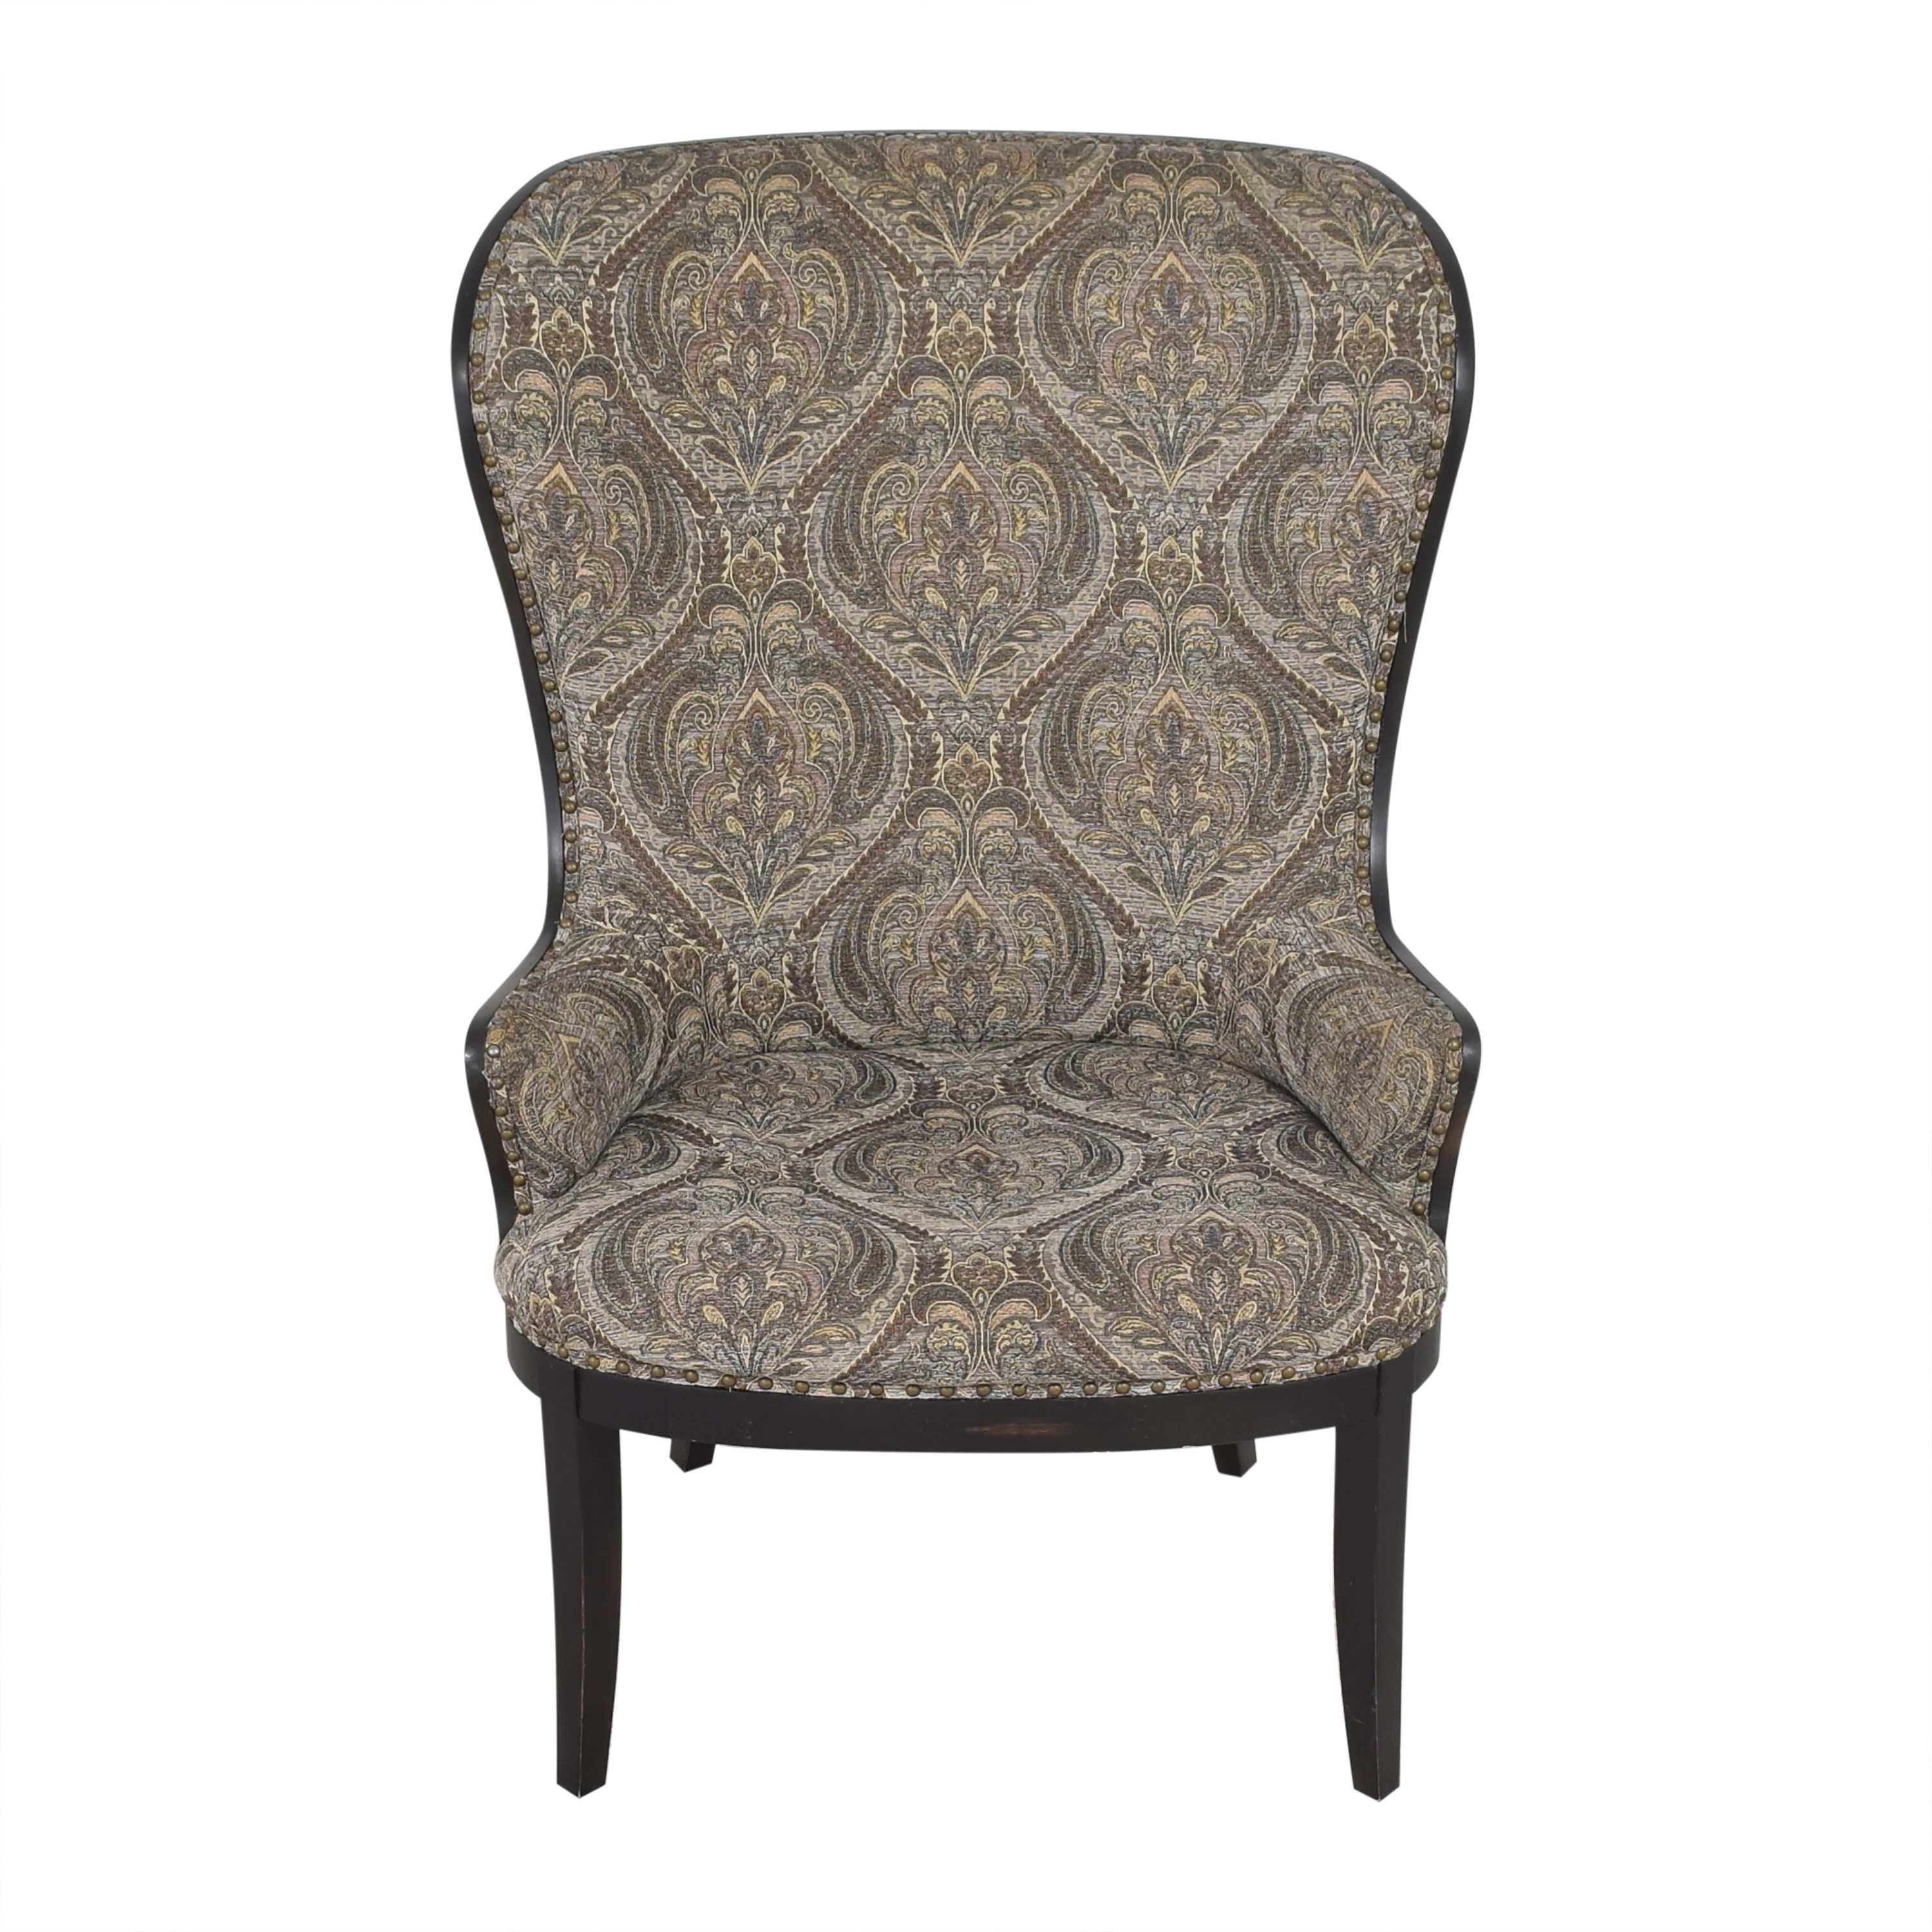 Arhaus Arhaus Portsmouth Accent Chair used